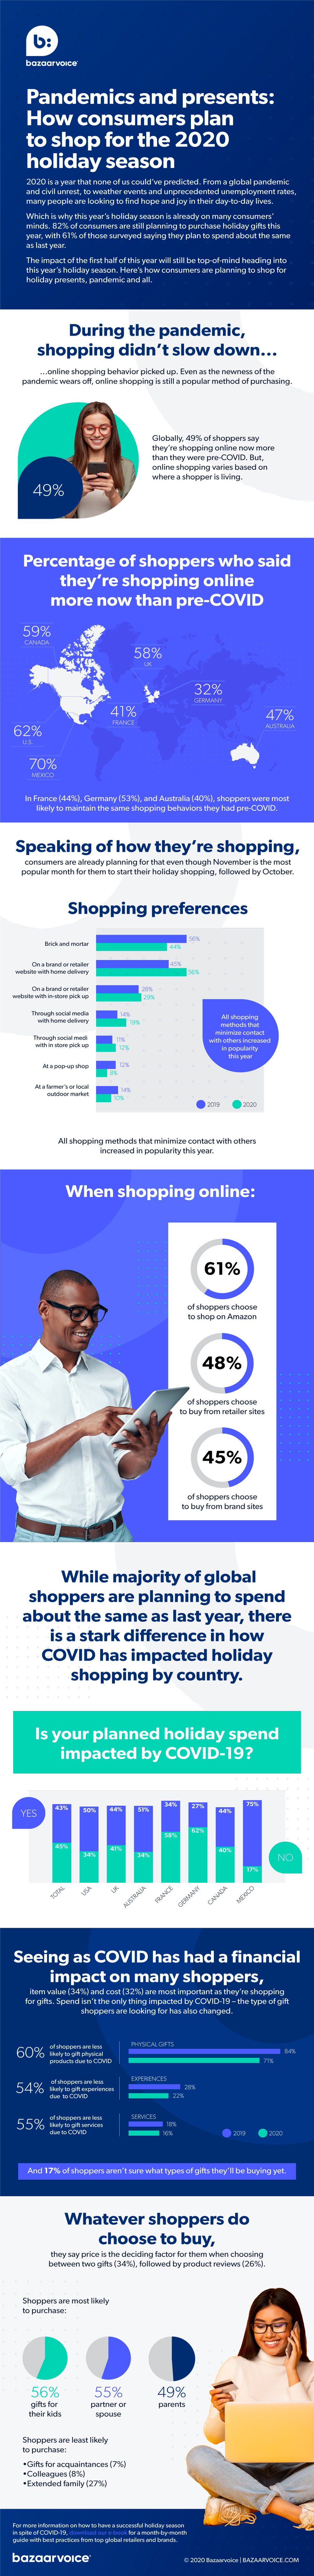 Pandemics and presents: A look at how consumers plan to shop for the holidays in 2020